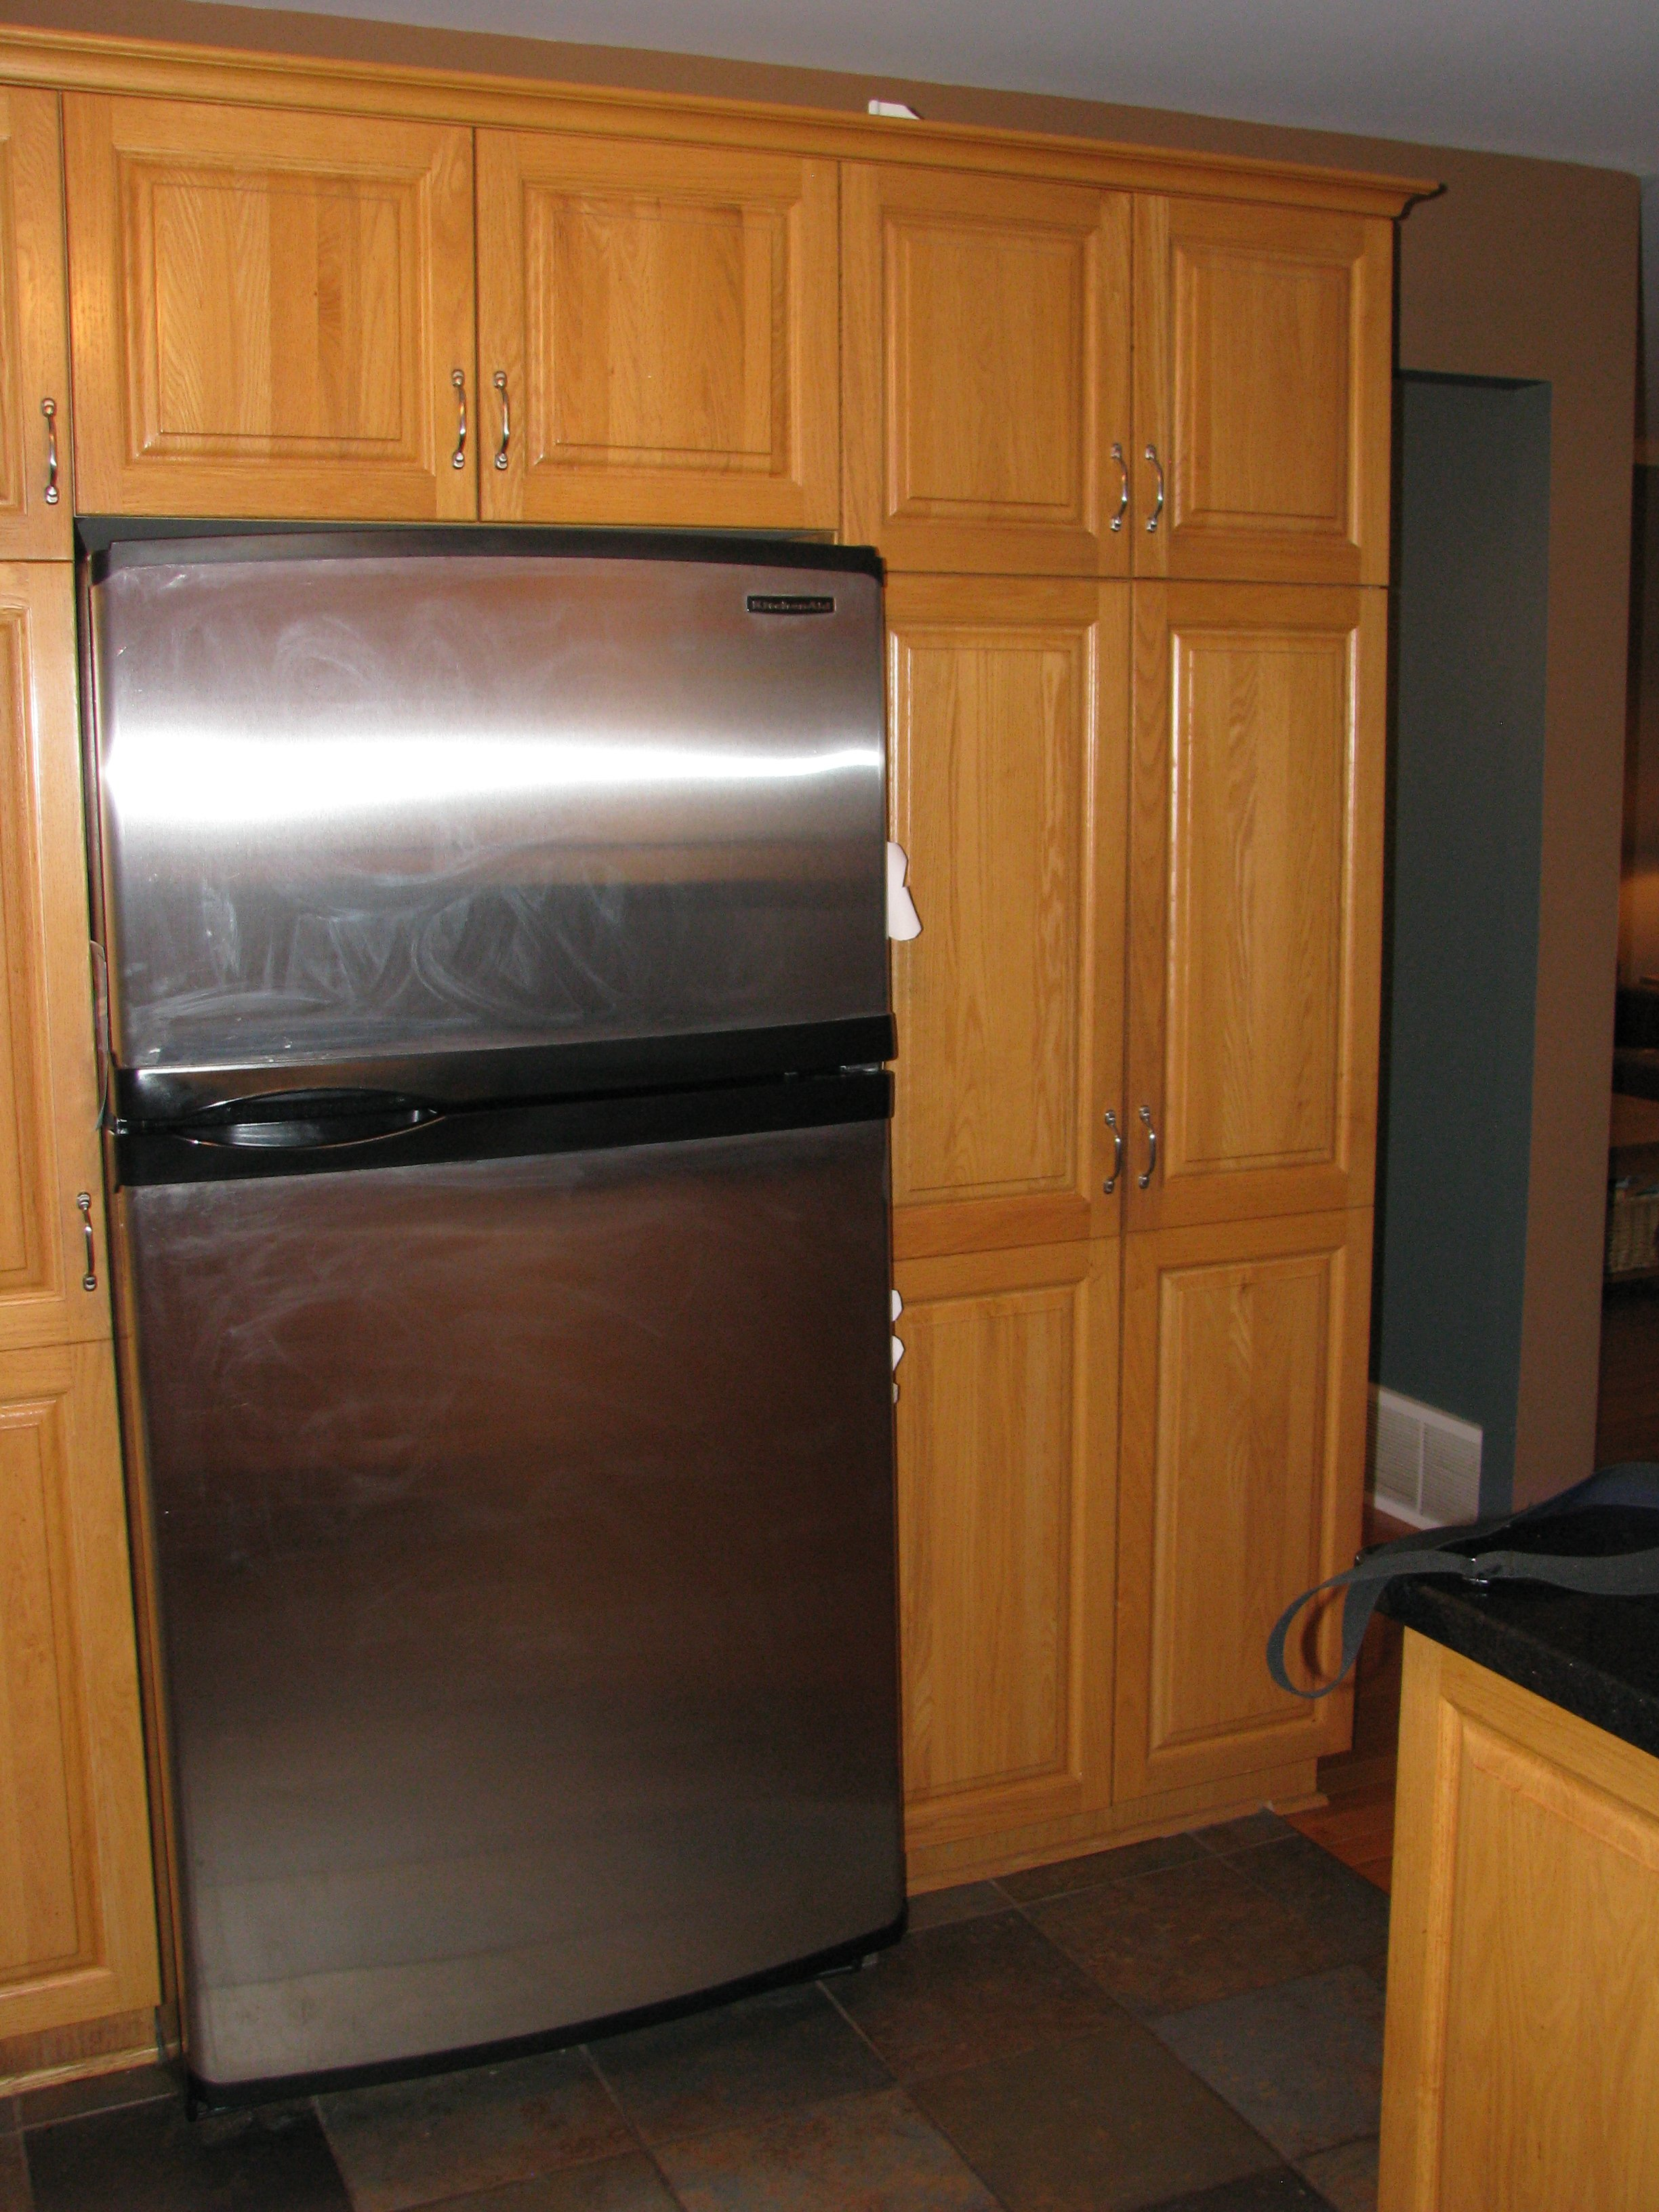 1990s kitchen makeover 90 u0027s oak painted kitchen  u2022 the vanderveen house  rh   thevanderveenhouse com